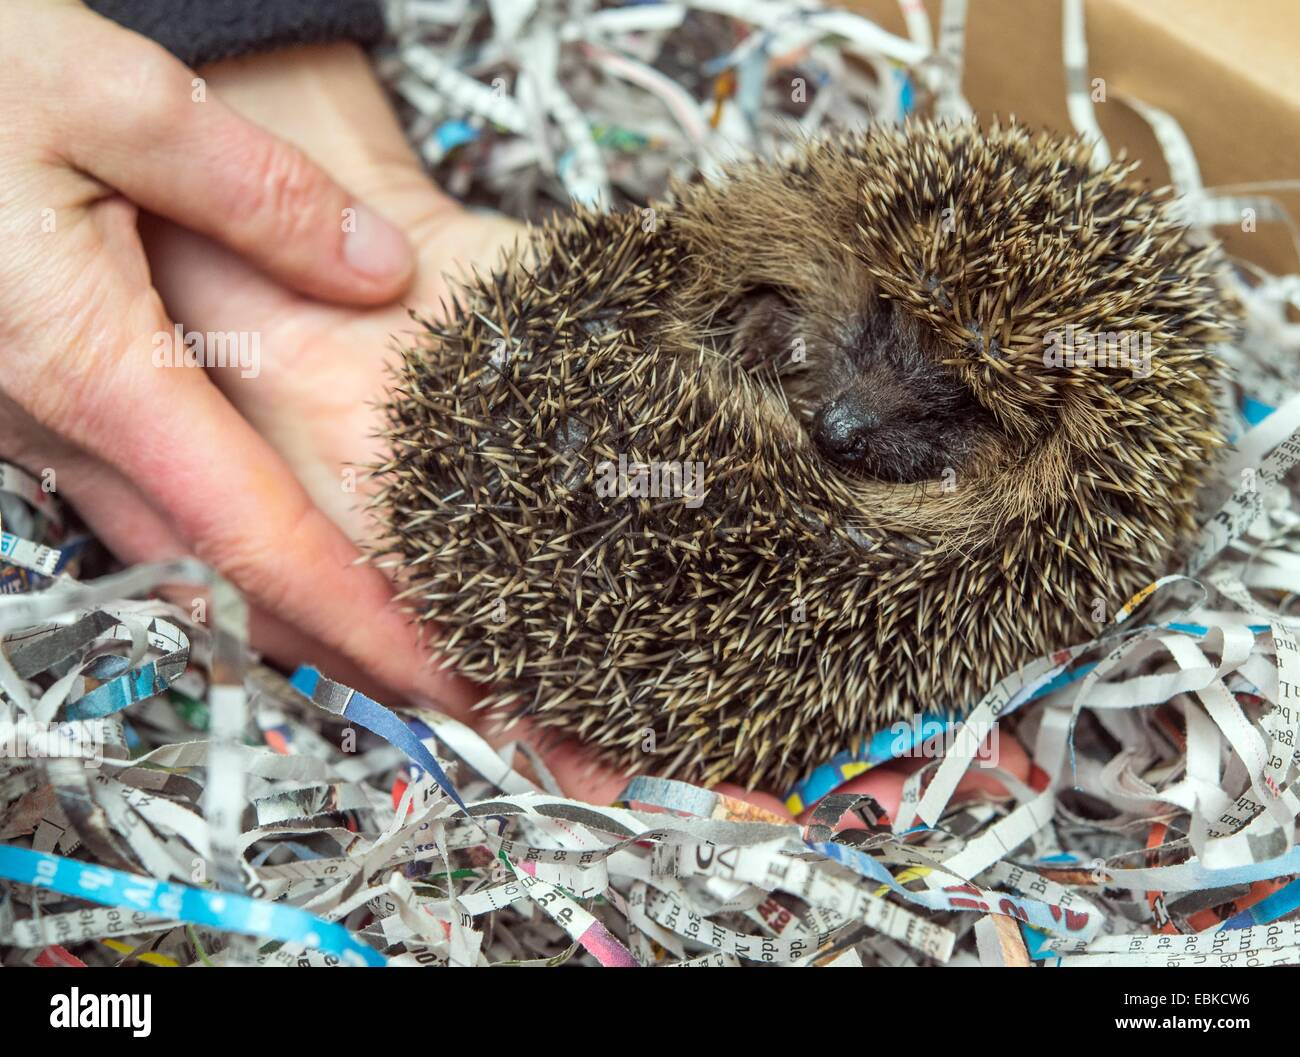 Simone Hartung places a small hedgehog into a box filled with strips of paper at the hedgehog ward in Neuzelle, - Stock Image